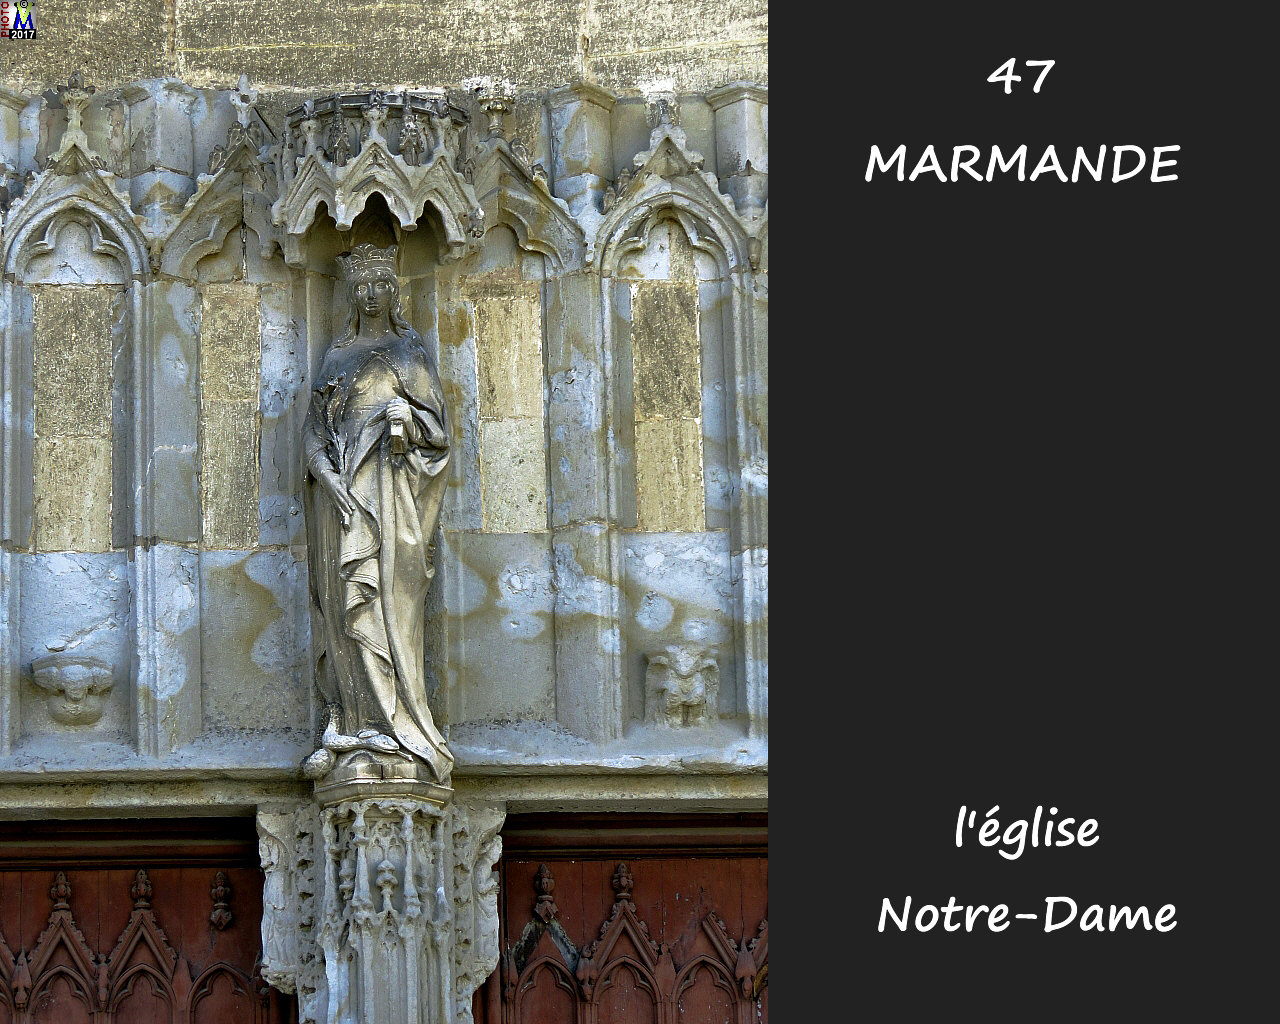 47MARMANDE_eglise_1032.jpg